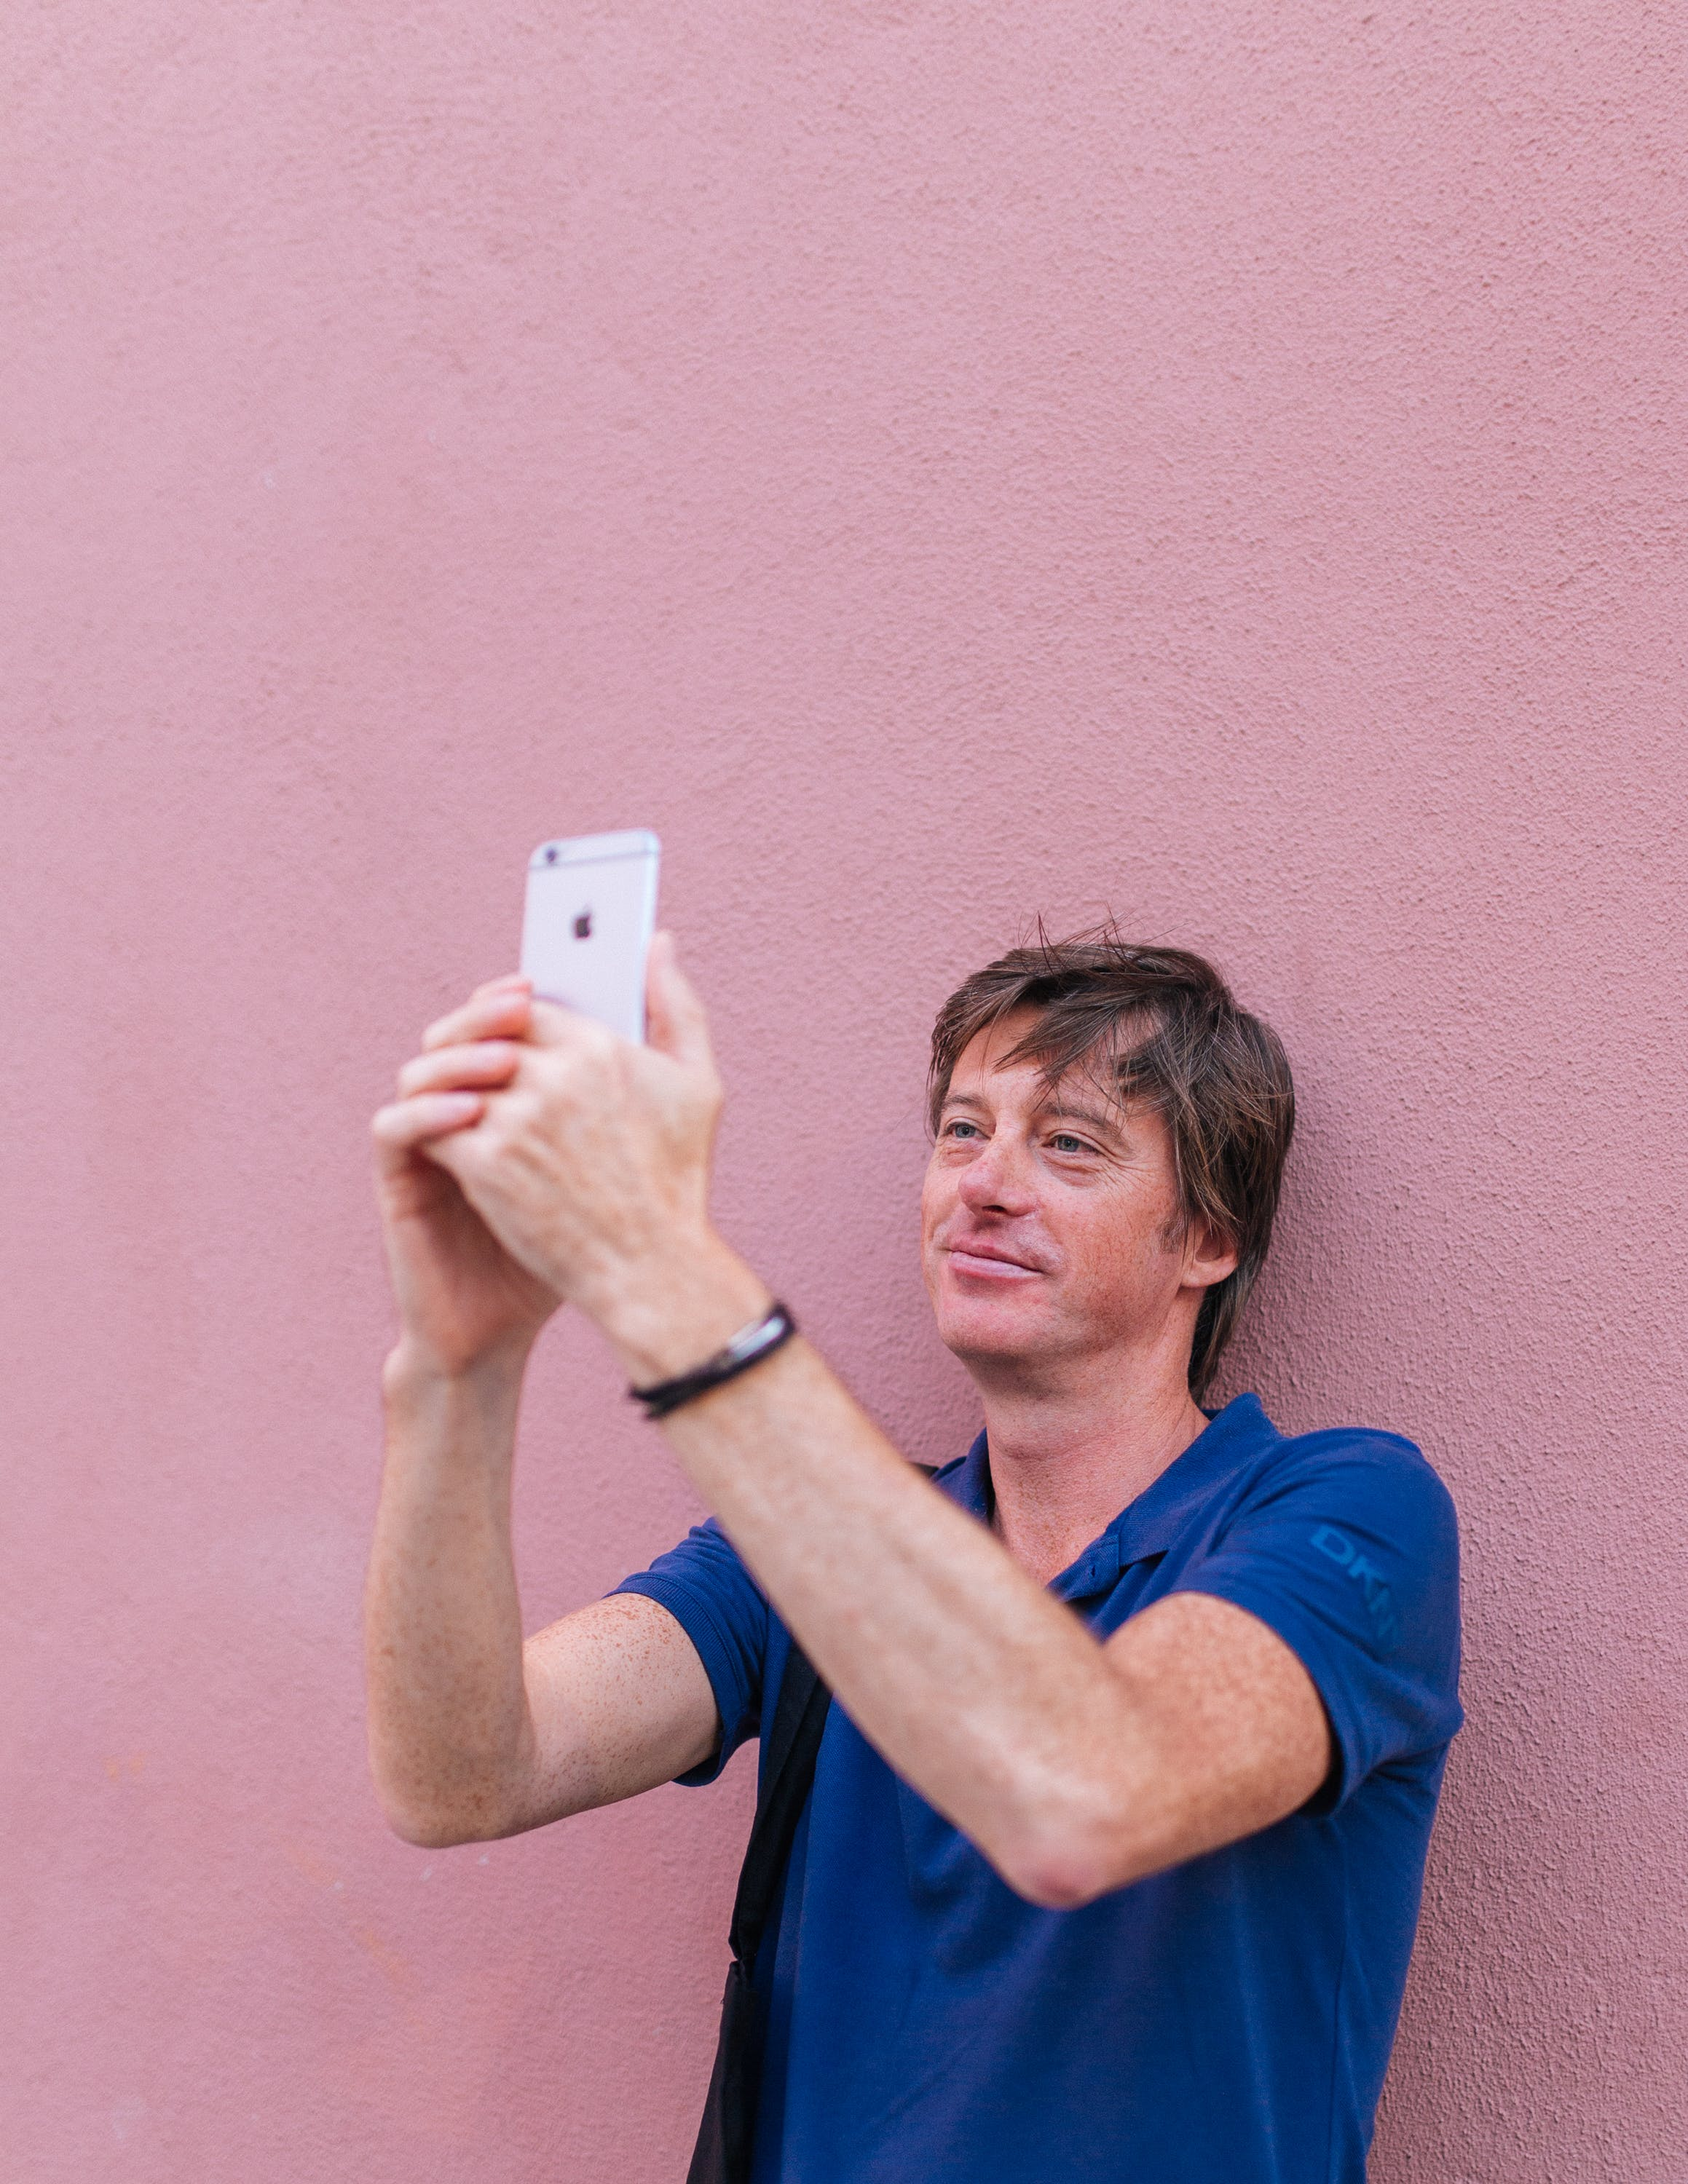 Man Taking Selfie While Leaning on Wall